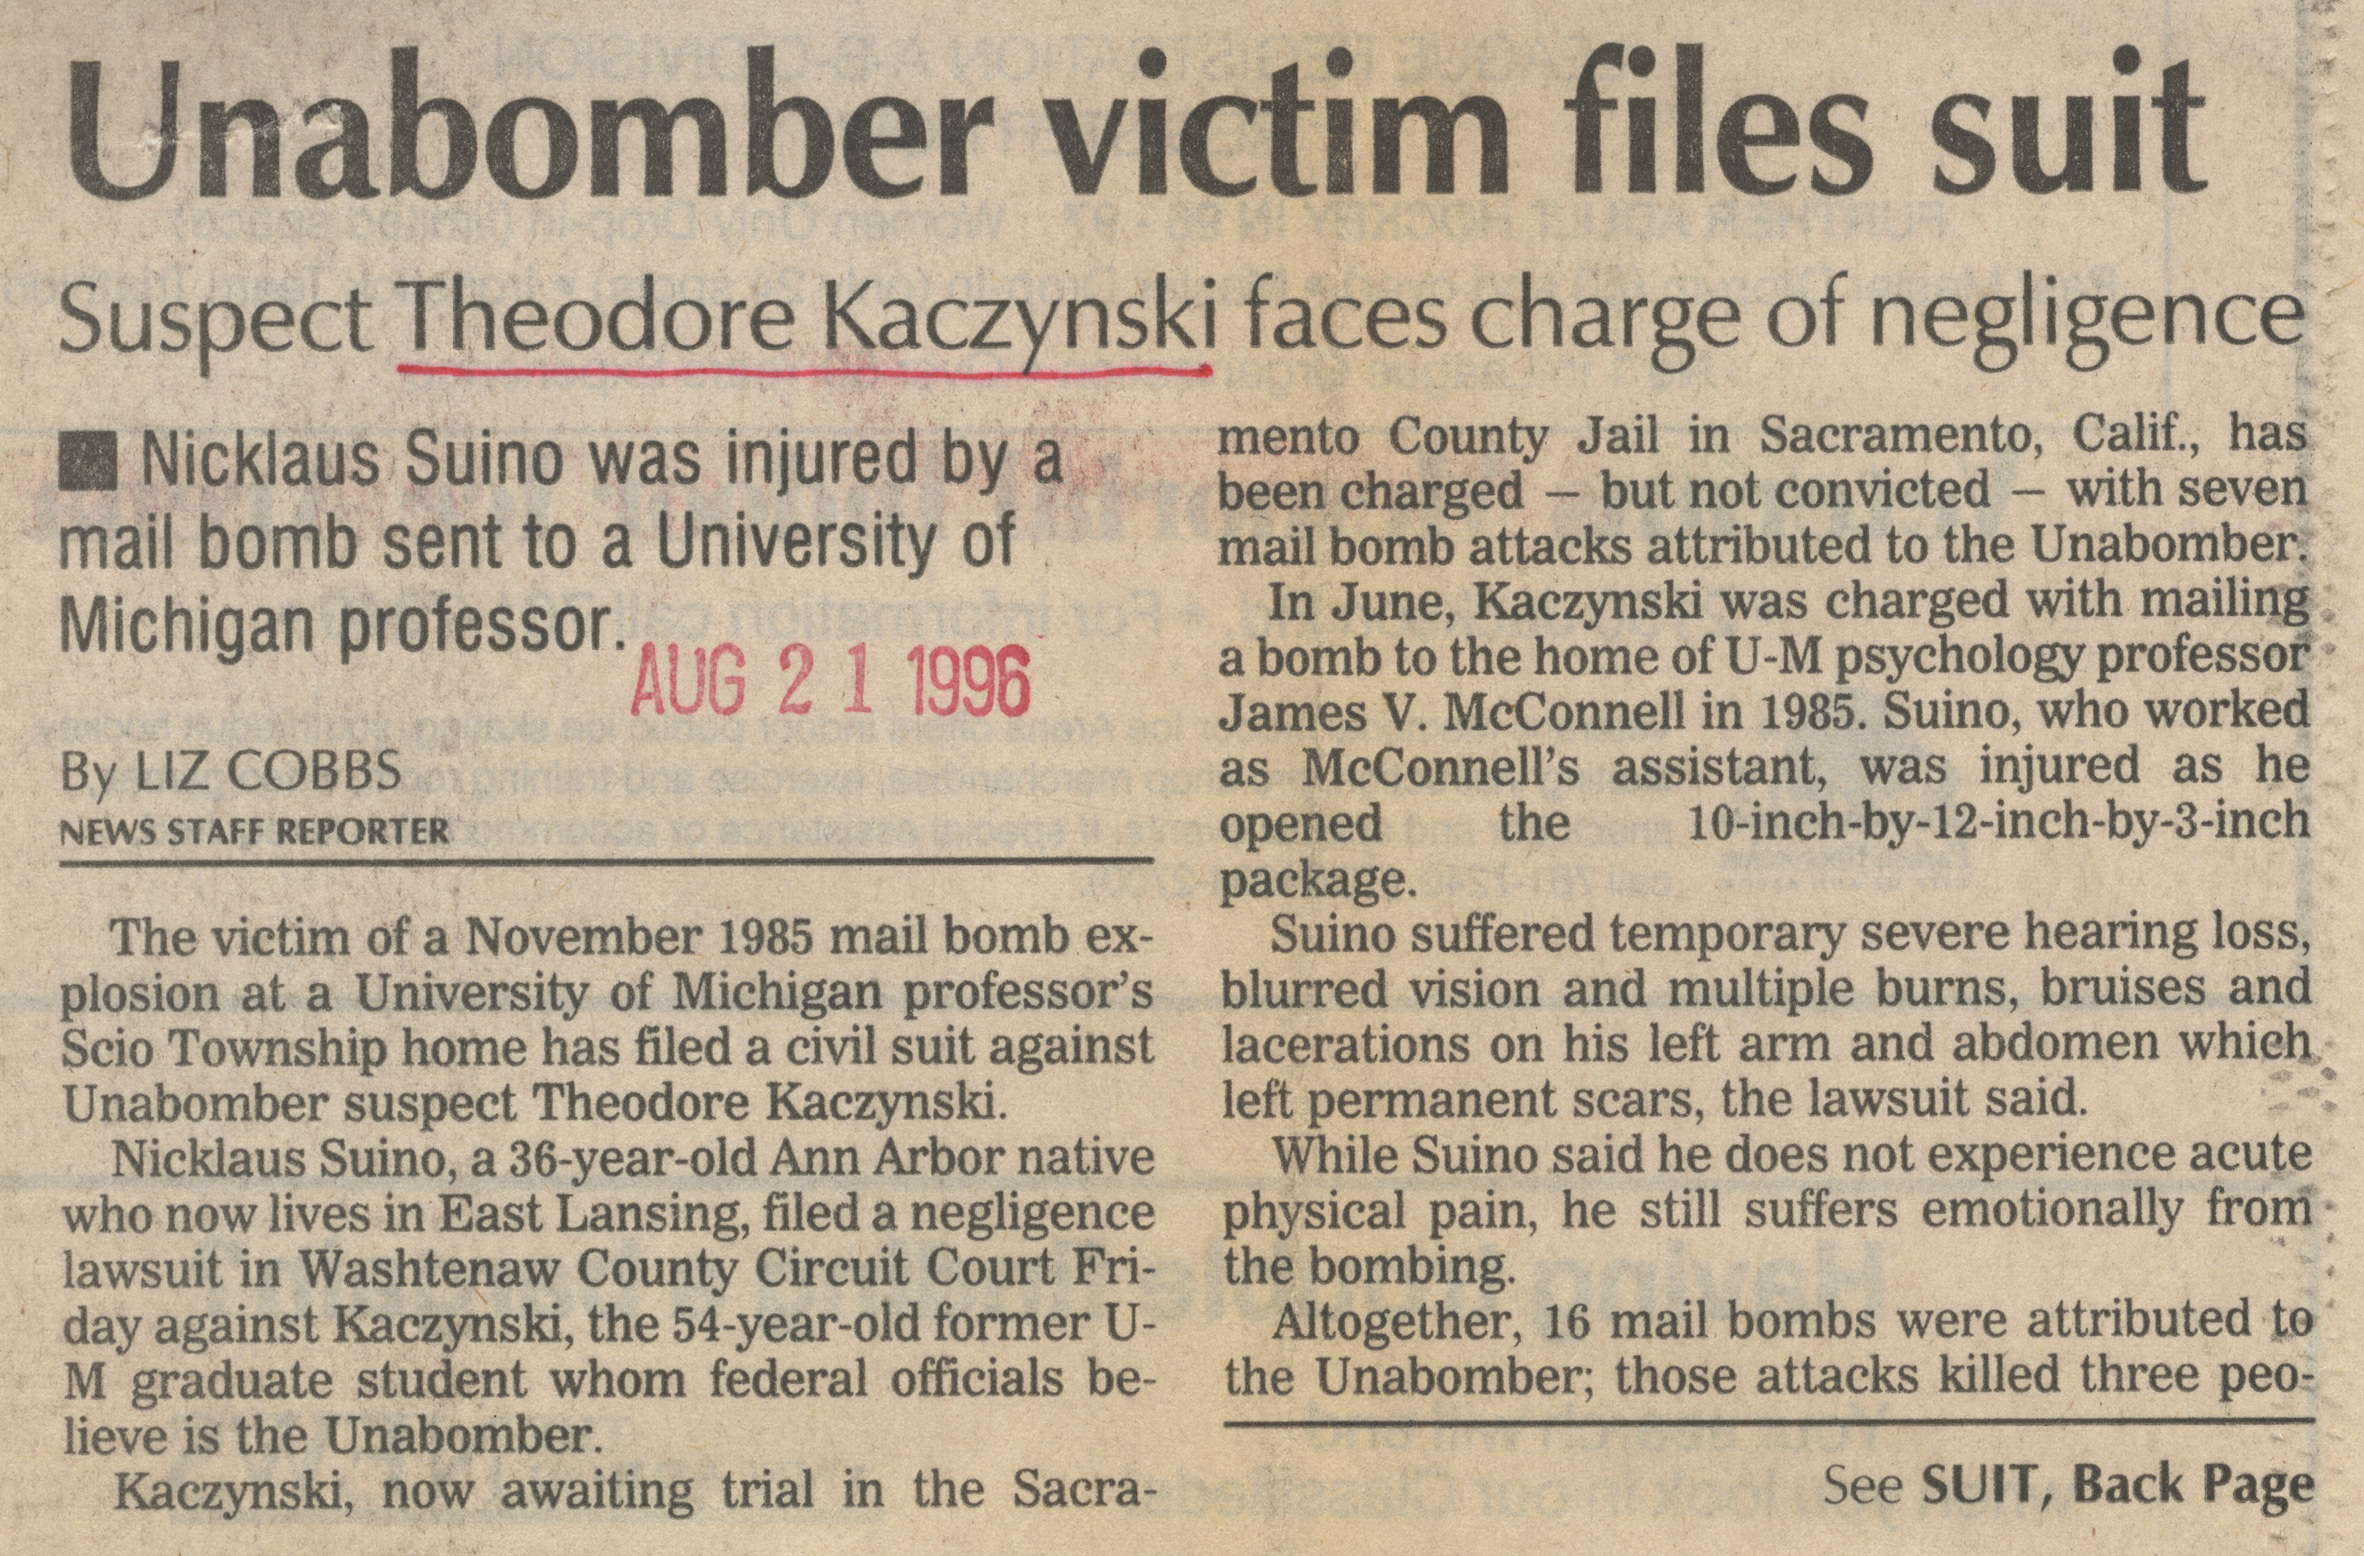 Unabomber Victim Files Suit image